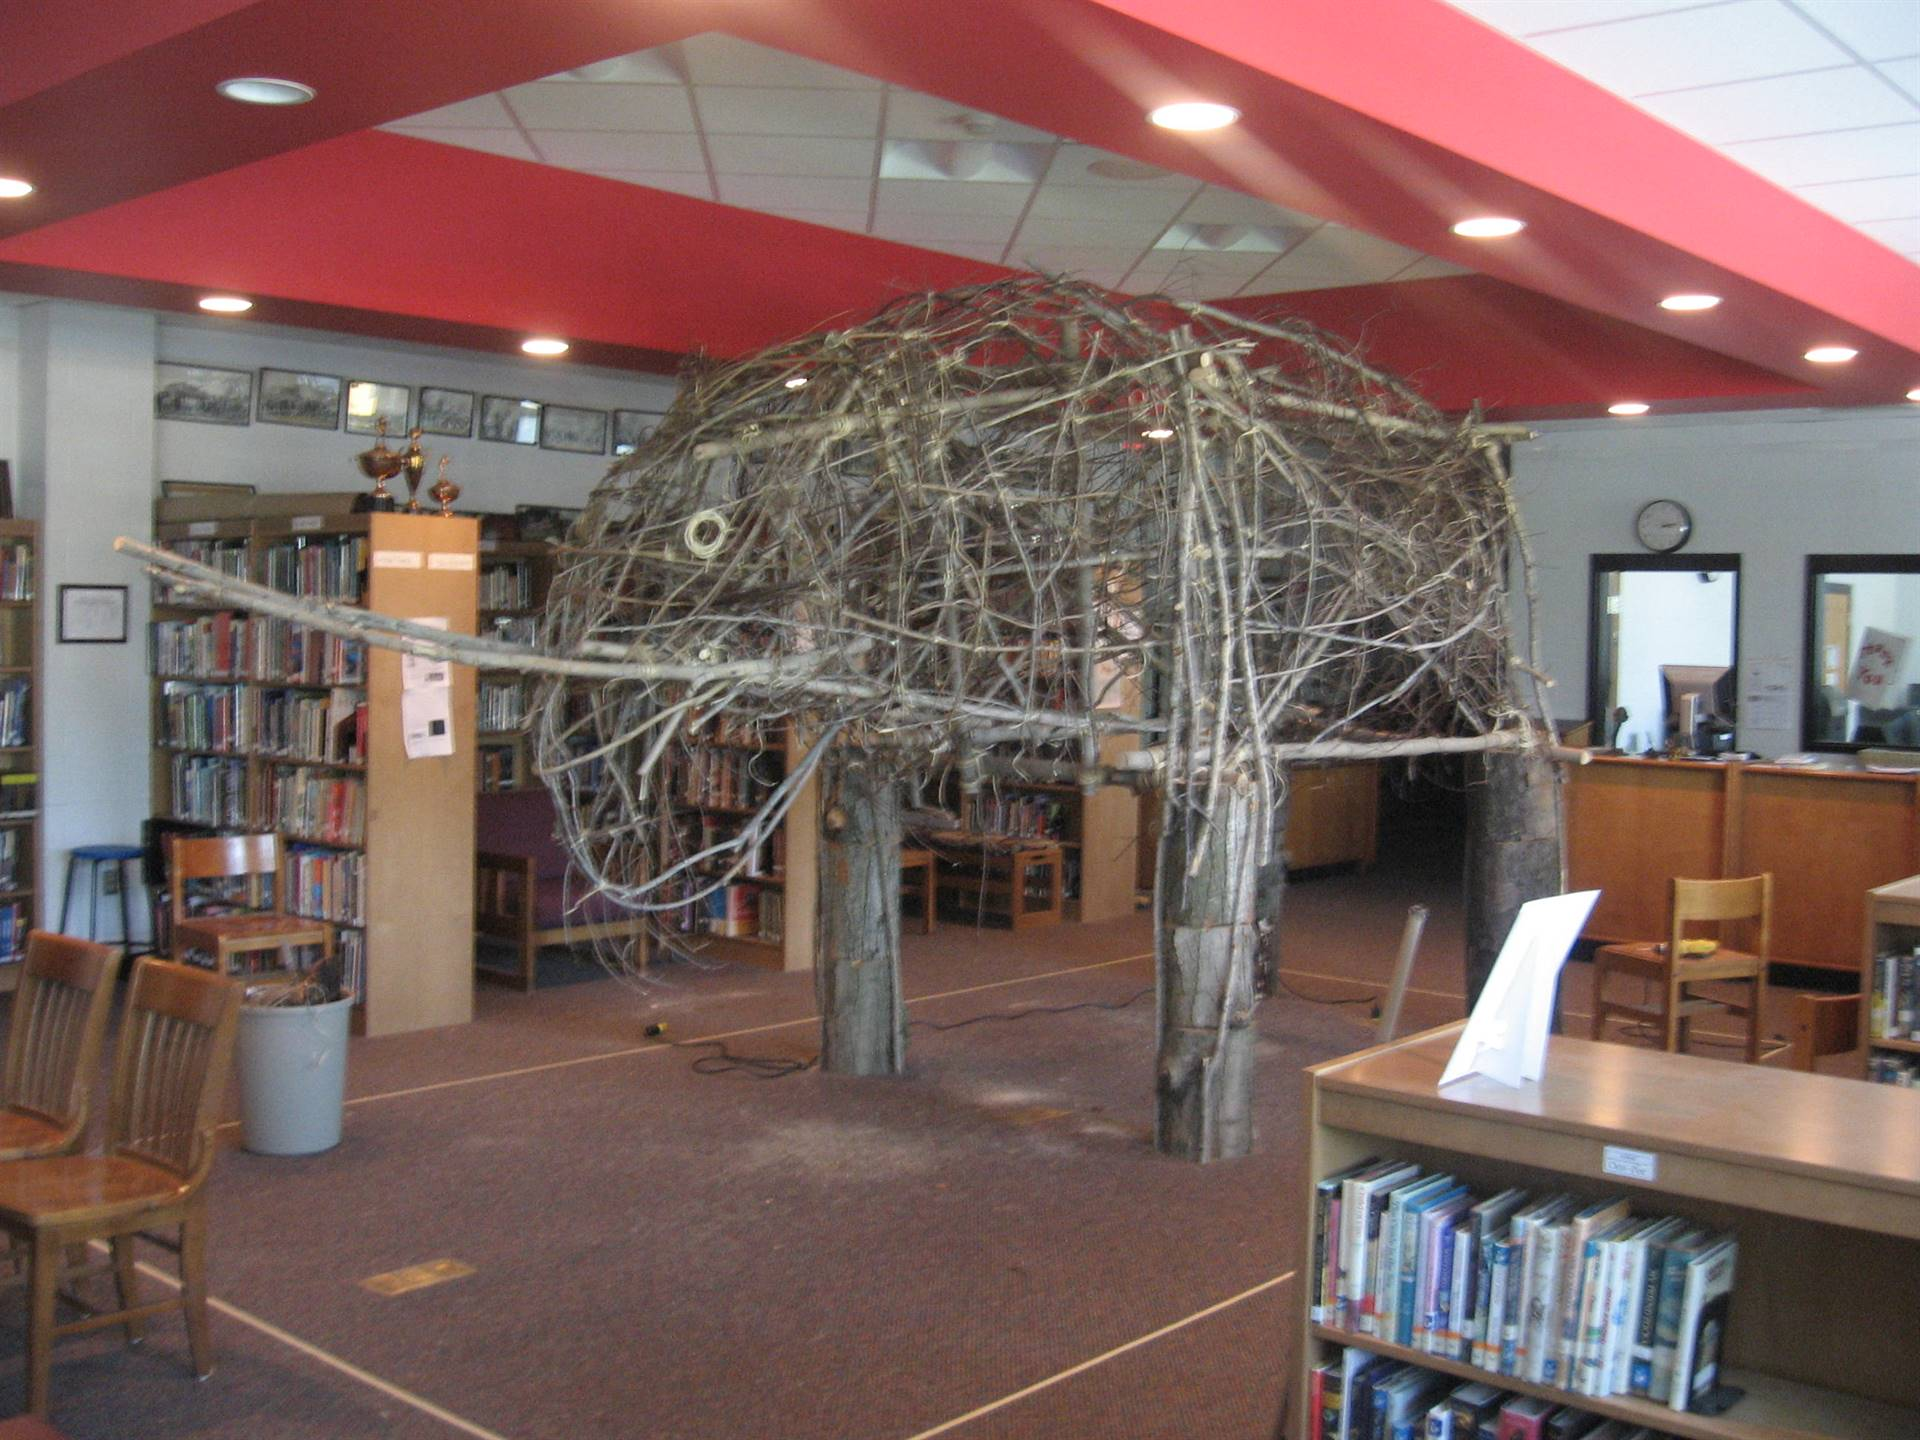 A favorite: Life-size mastodon constructed of tree limbs and trunks.